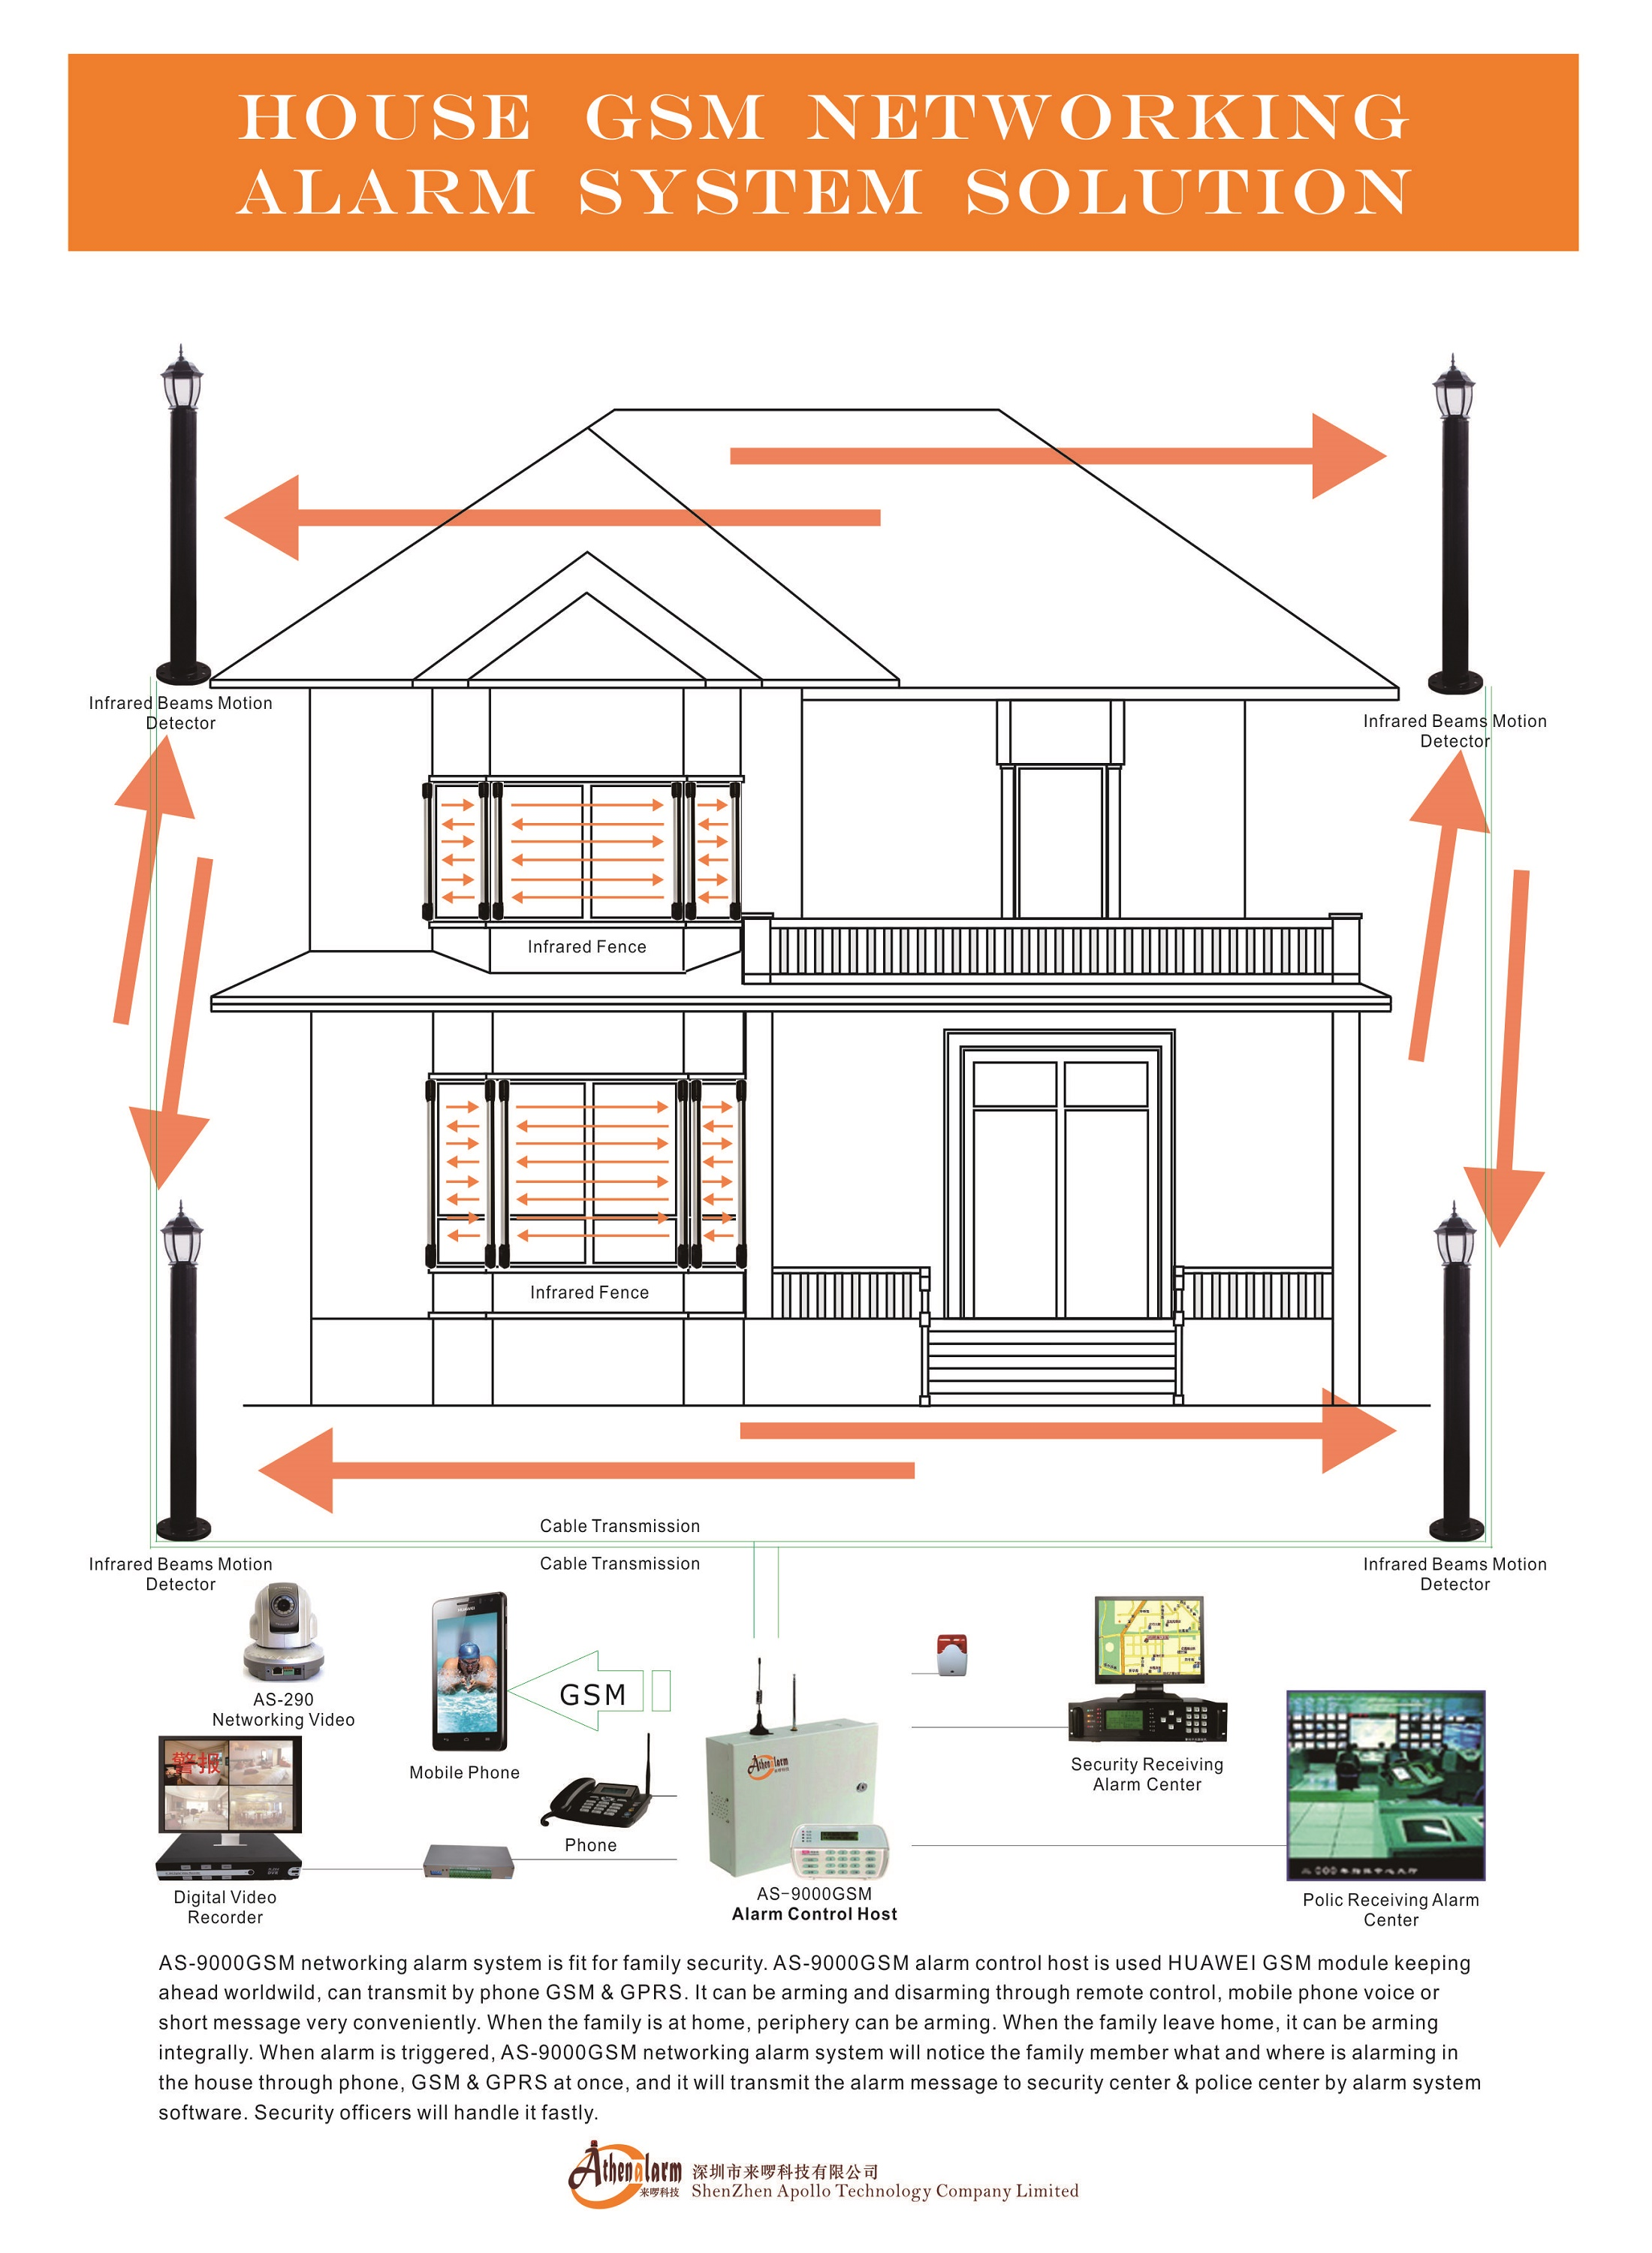 Athenalarm AS-9000GSM house GSM networking alarm system solution